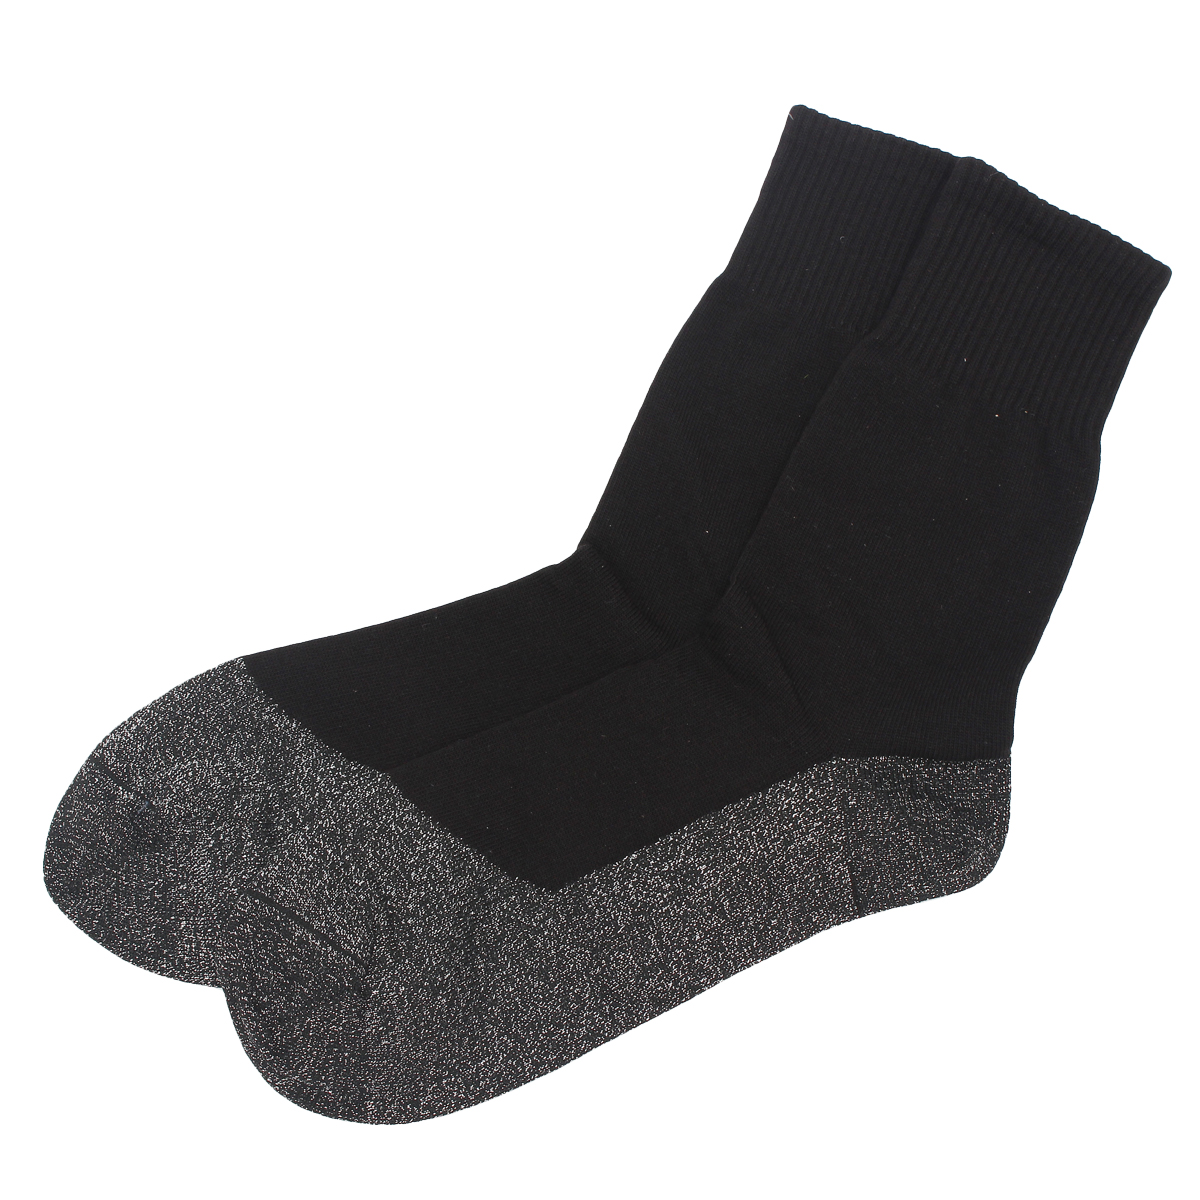 Unisex Fibers 35 Below Socks Keep Your Feet Warm And Dry Heat Insulation